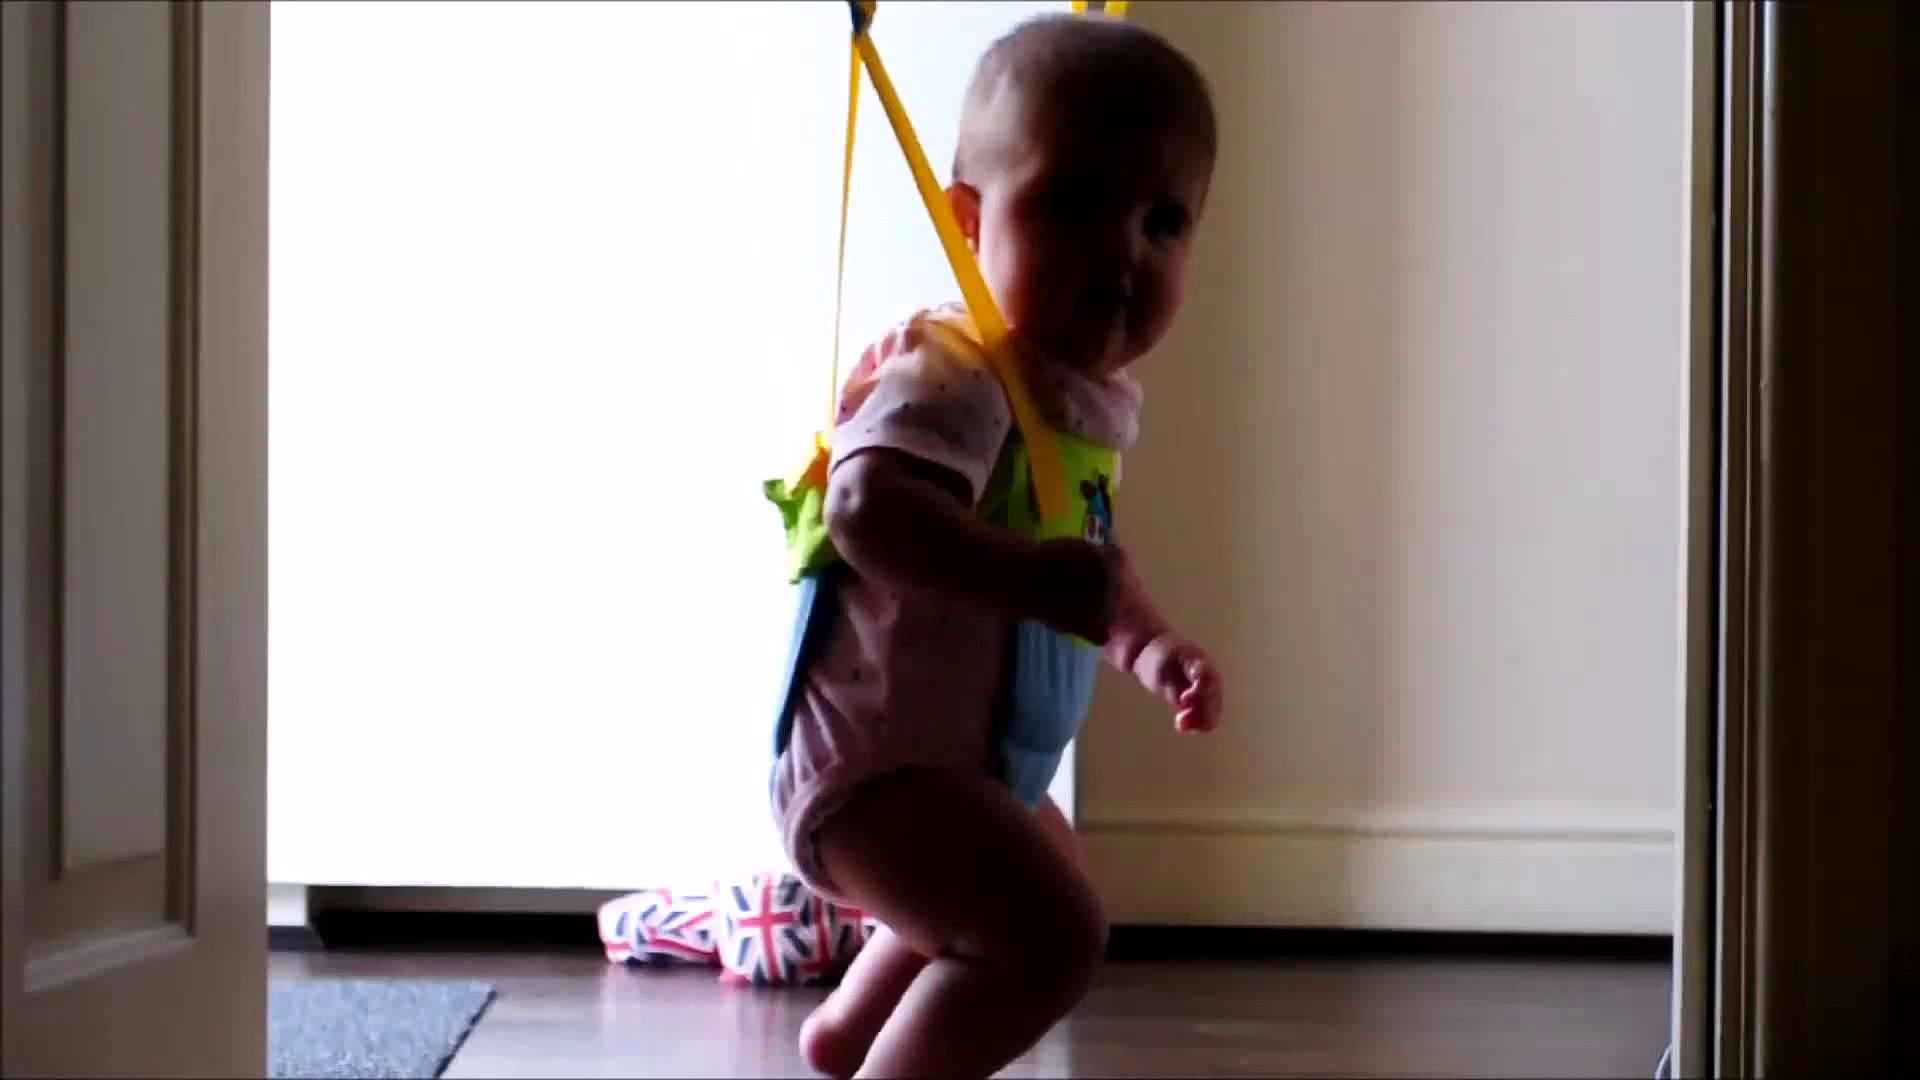 Babyzimmer mia ~ Funny baby mia shows her dance moves https: i2.wp.com